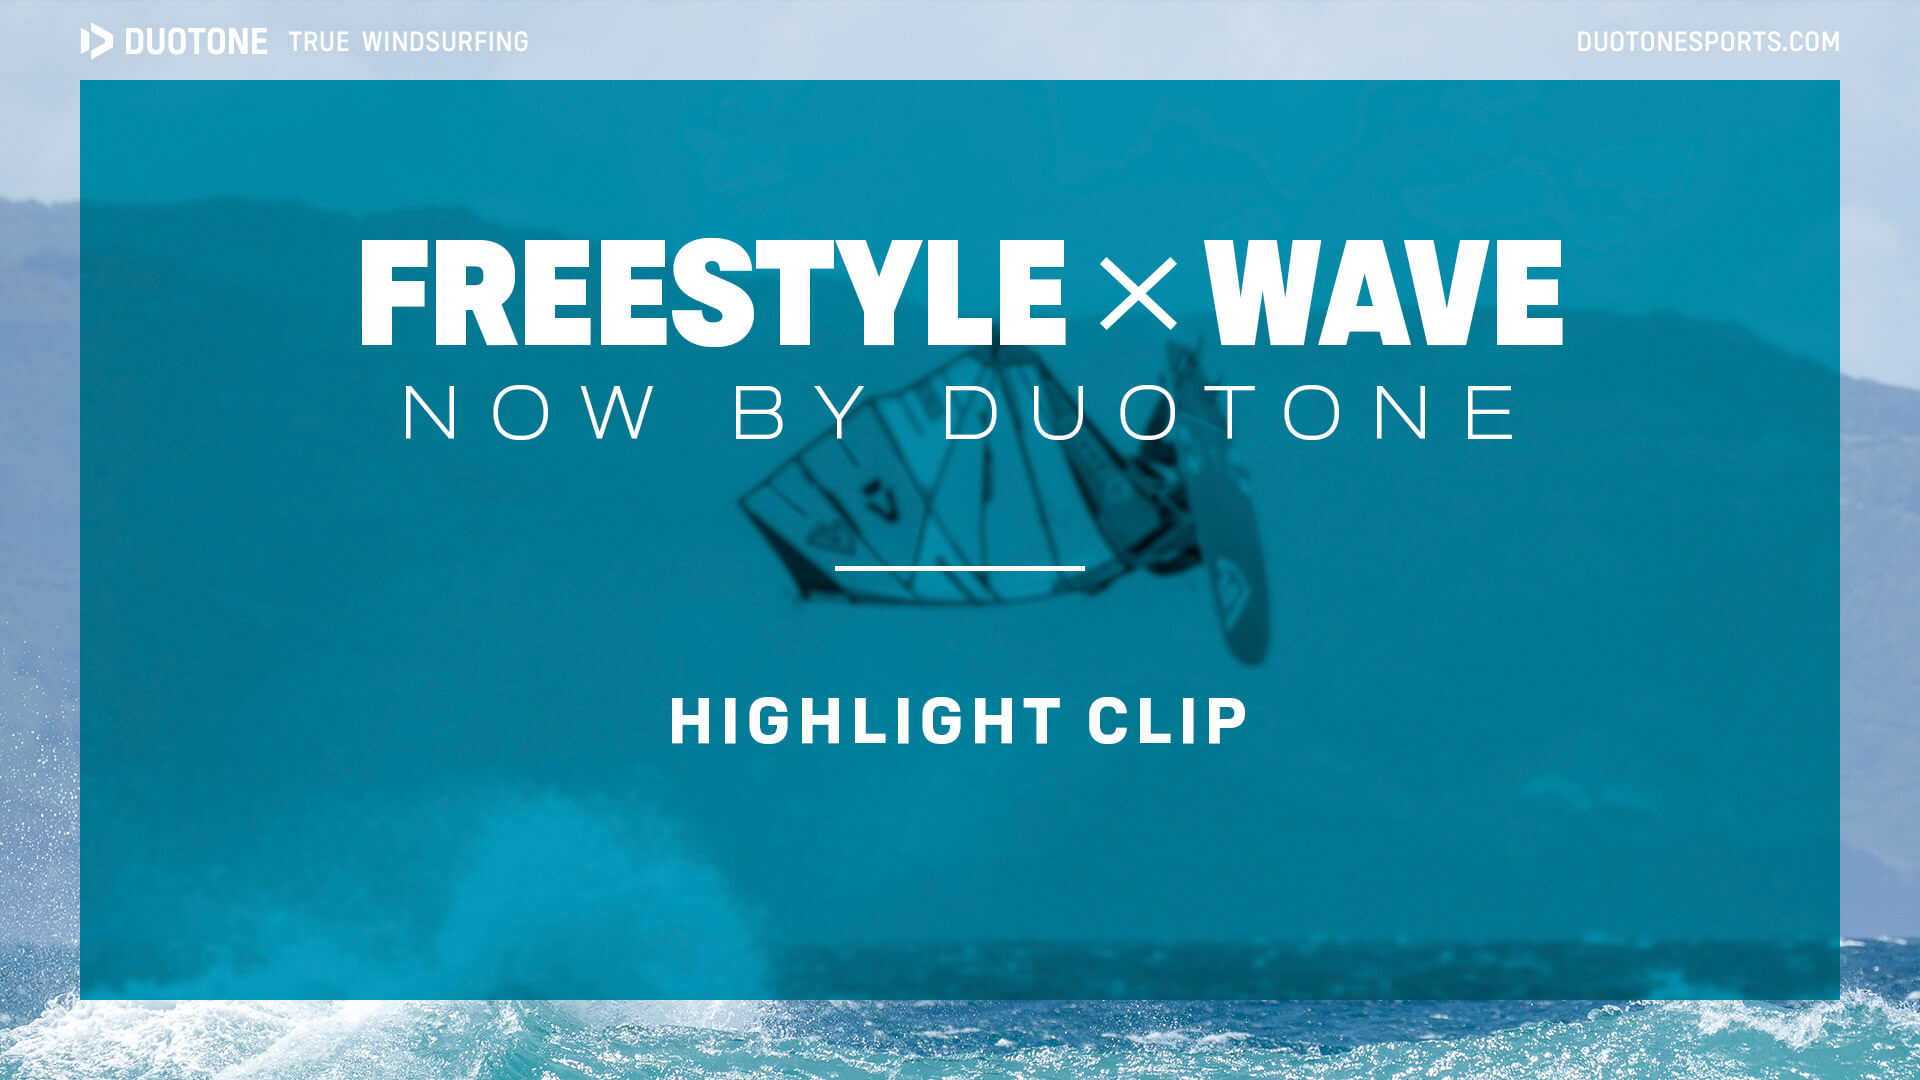 Duotone - Wave and Freestyle Highlights